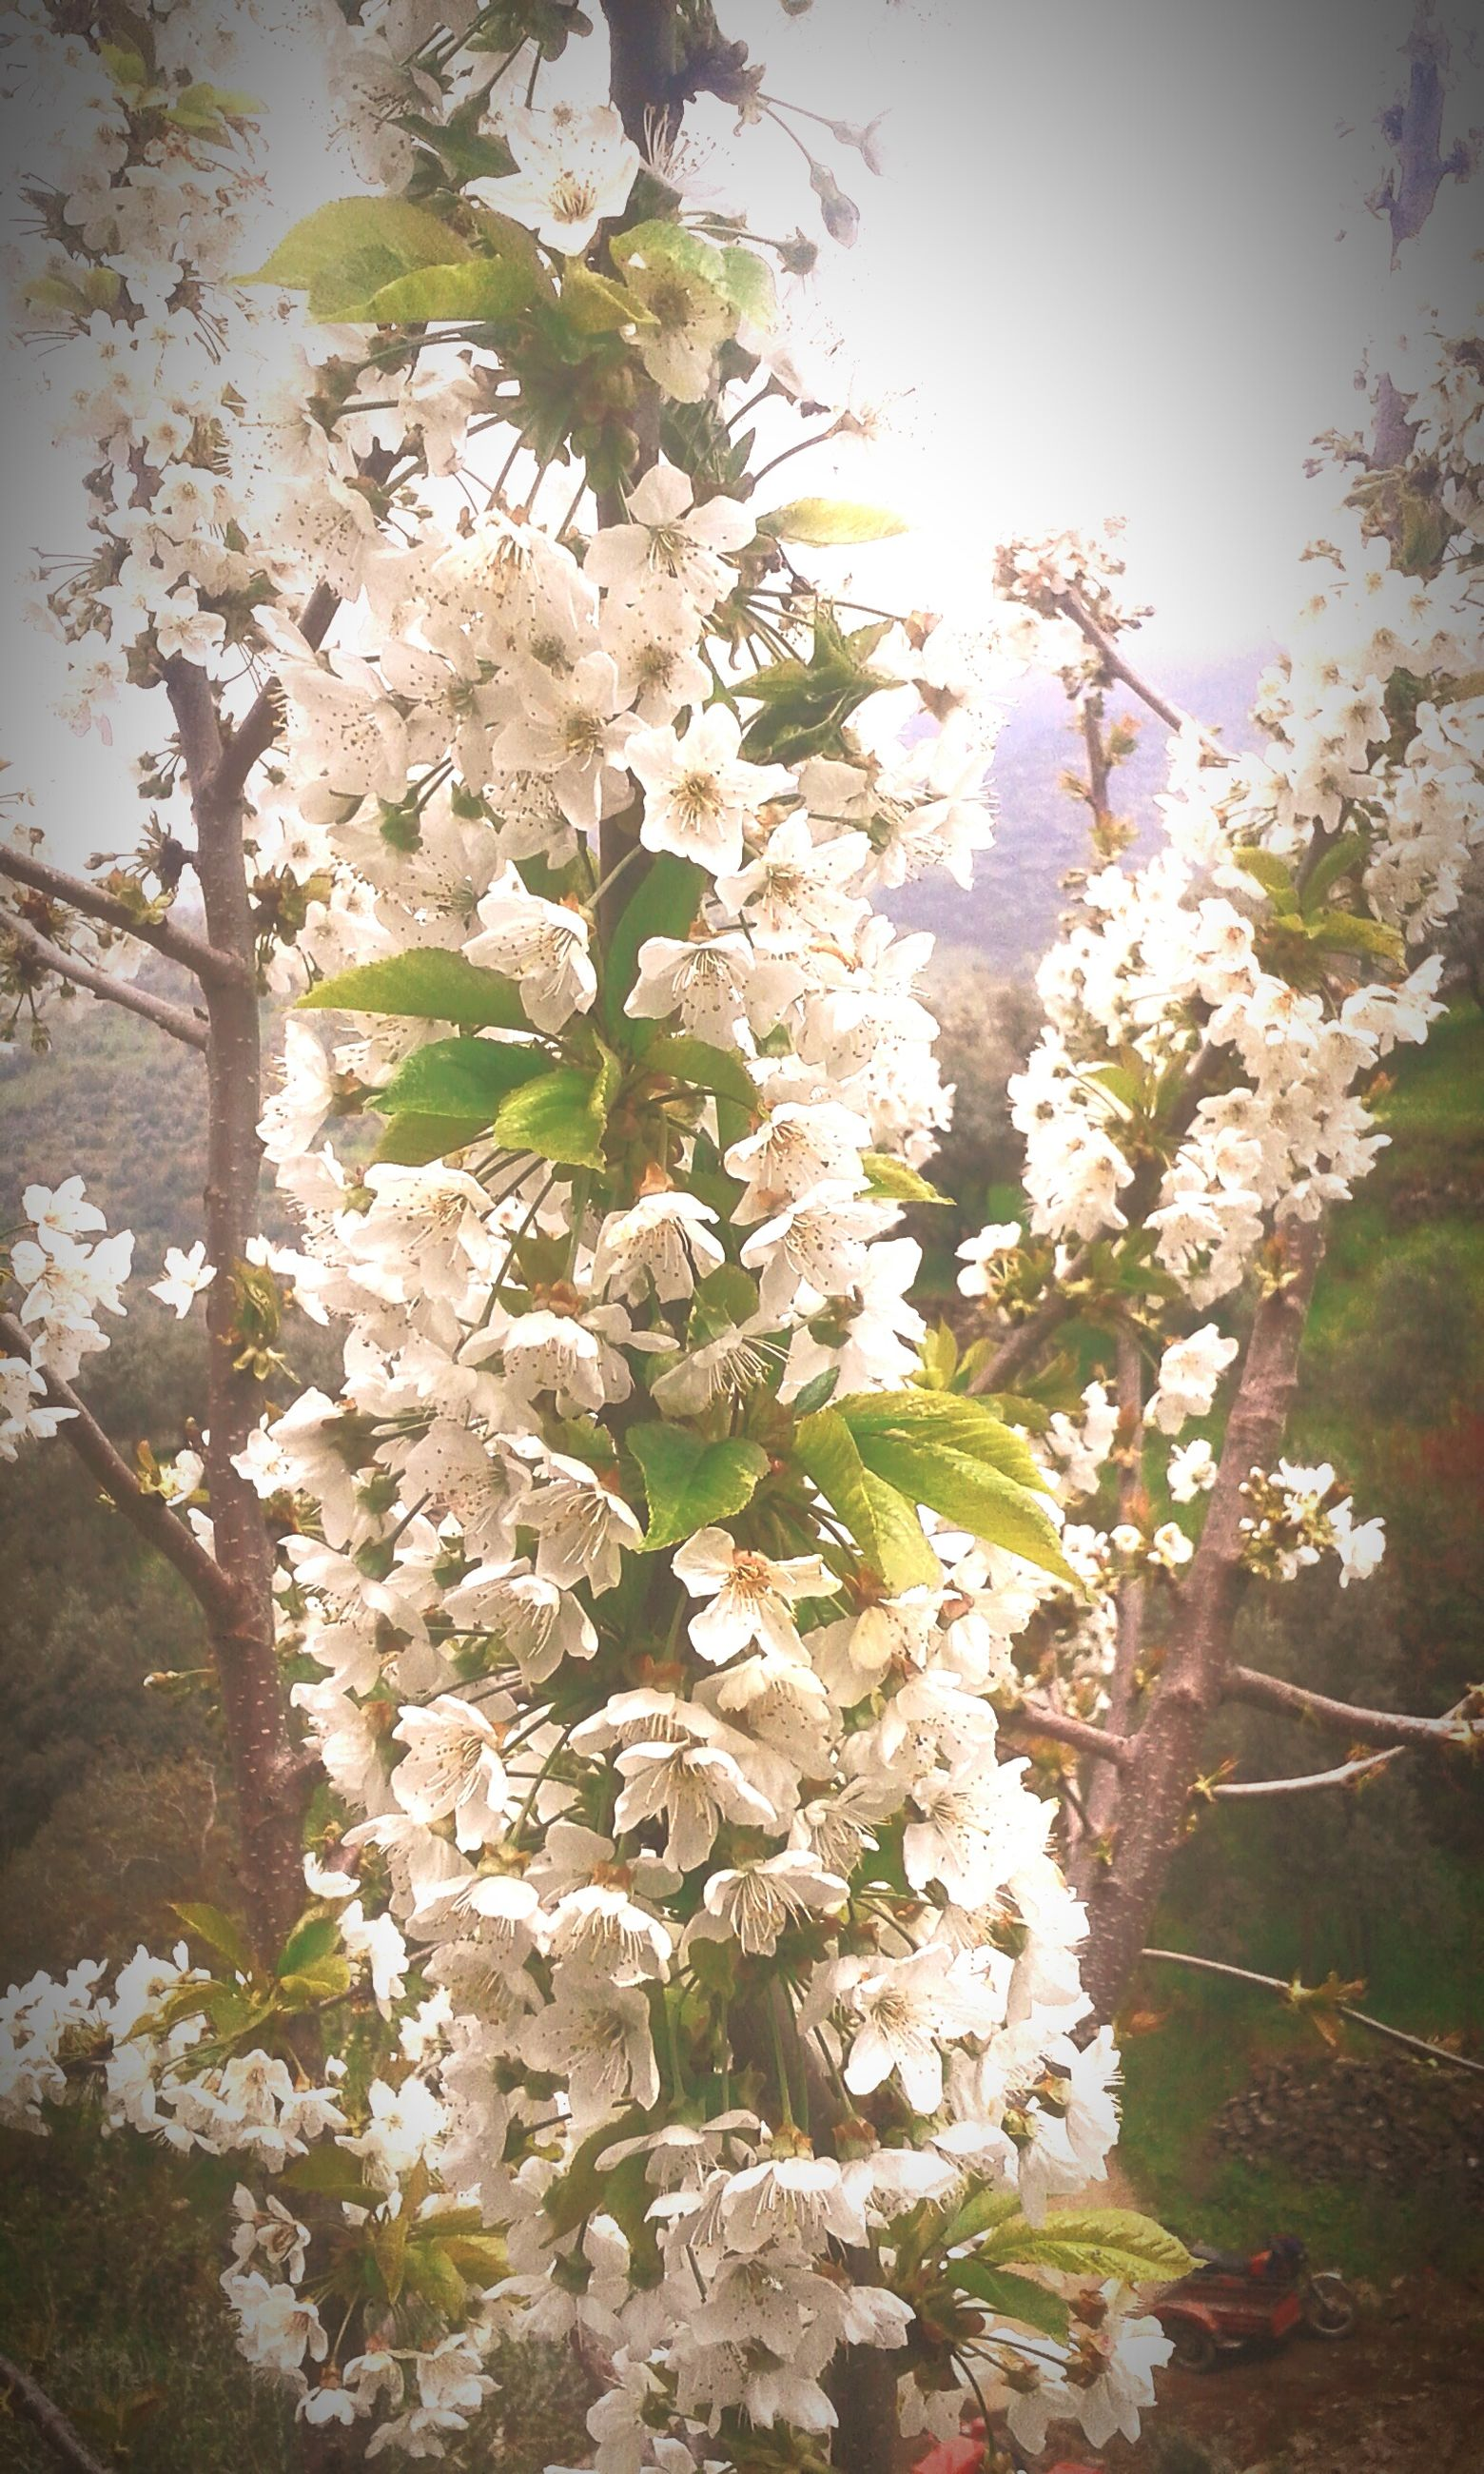 flower, freshness, fragility, growth, beauty in nature, white color, nature, petal, blooming, blossom, tree, in bloom, plant, branch, flower head, springtime, cherry blossom, day, outdoors, botany